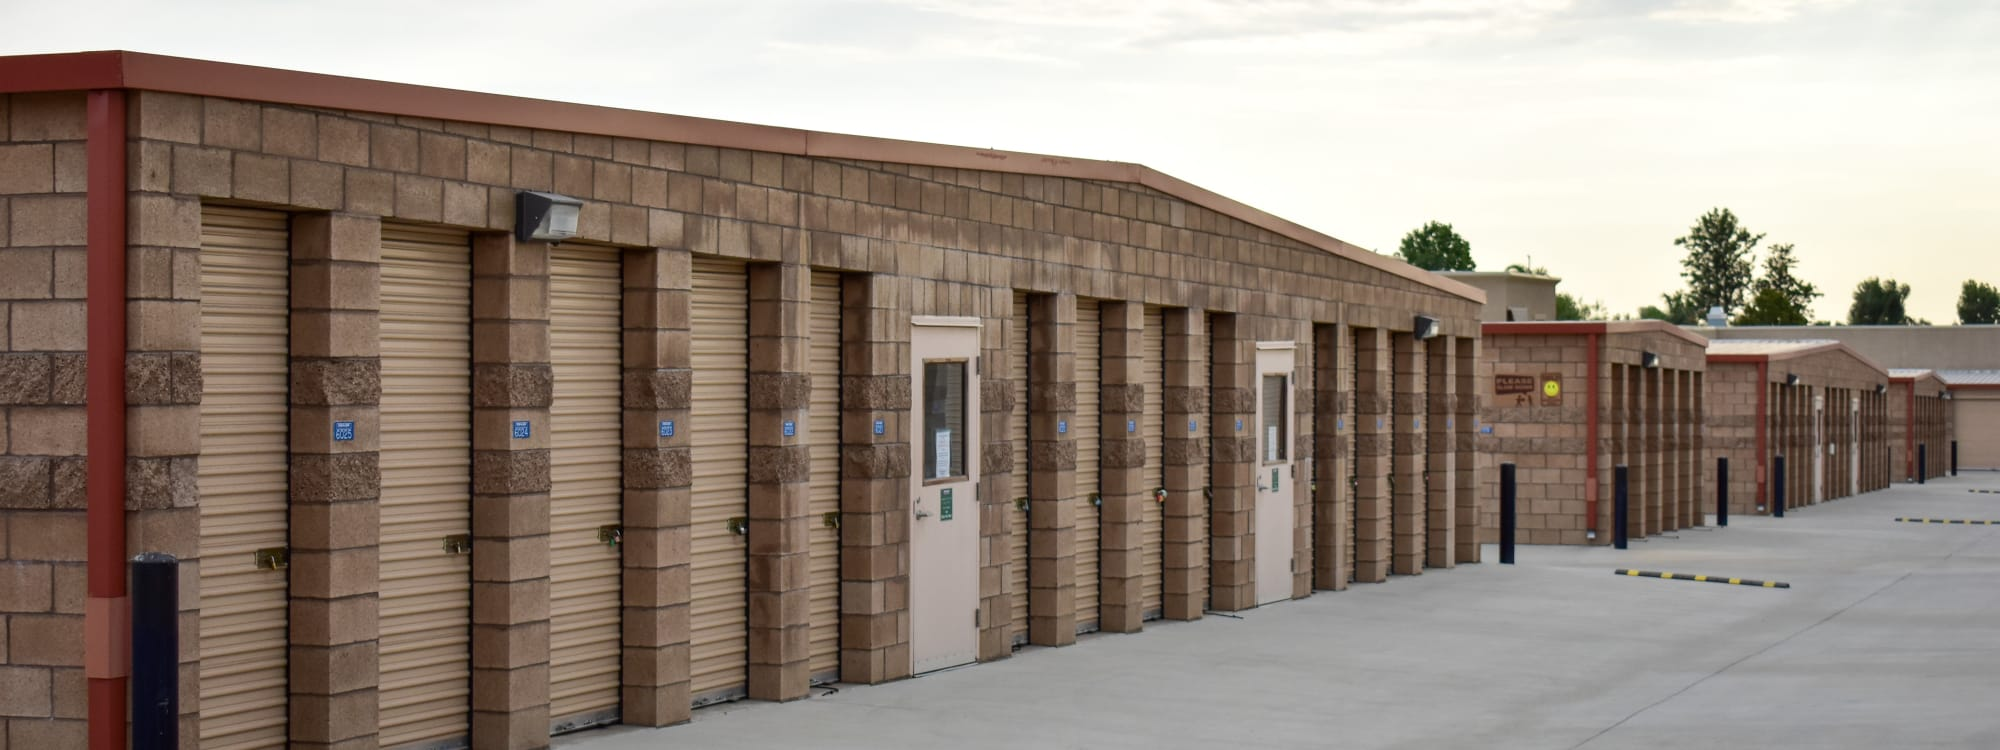 Self storage options at STOR-N-LOCK Self Storage in Redlands, California